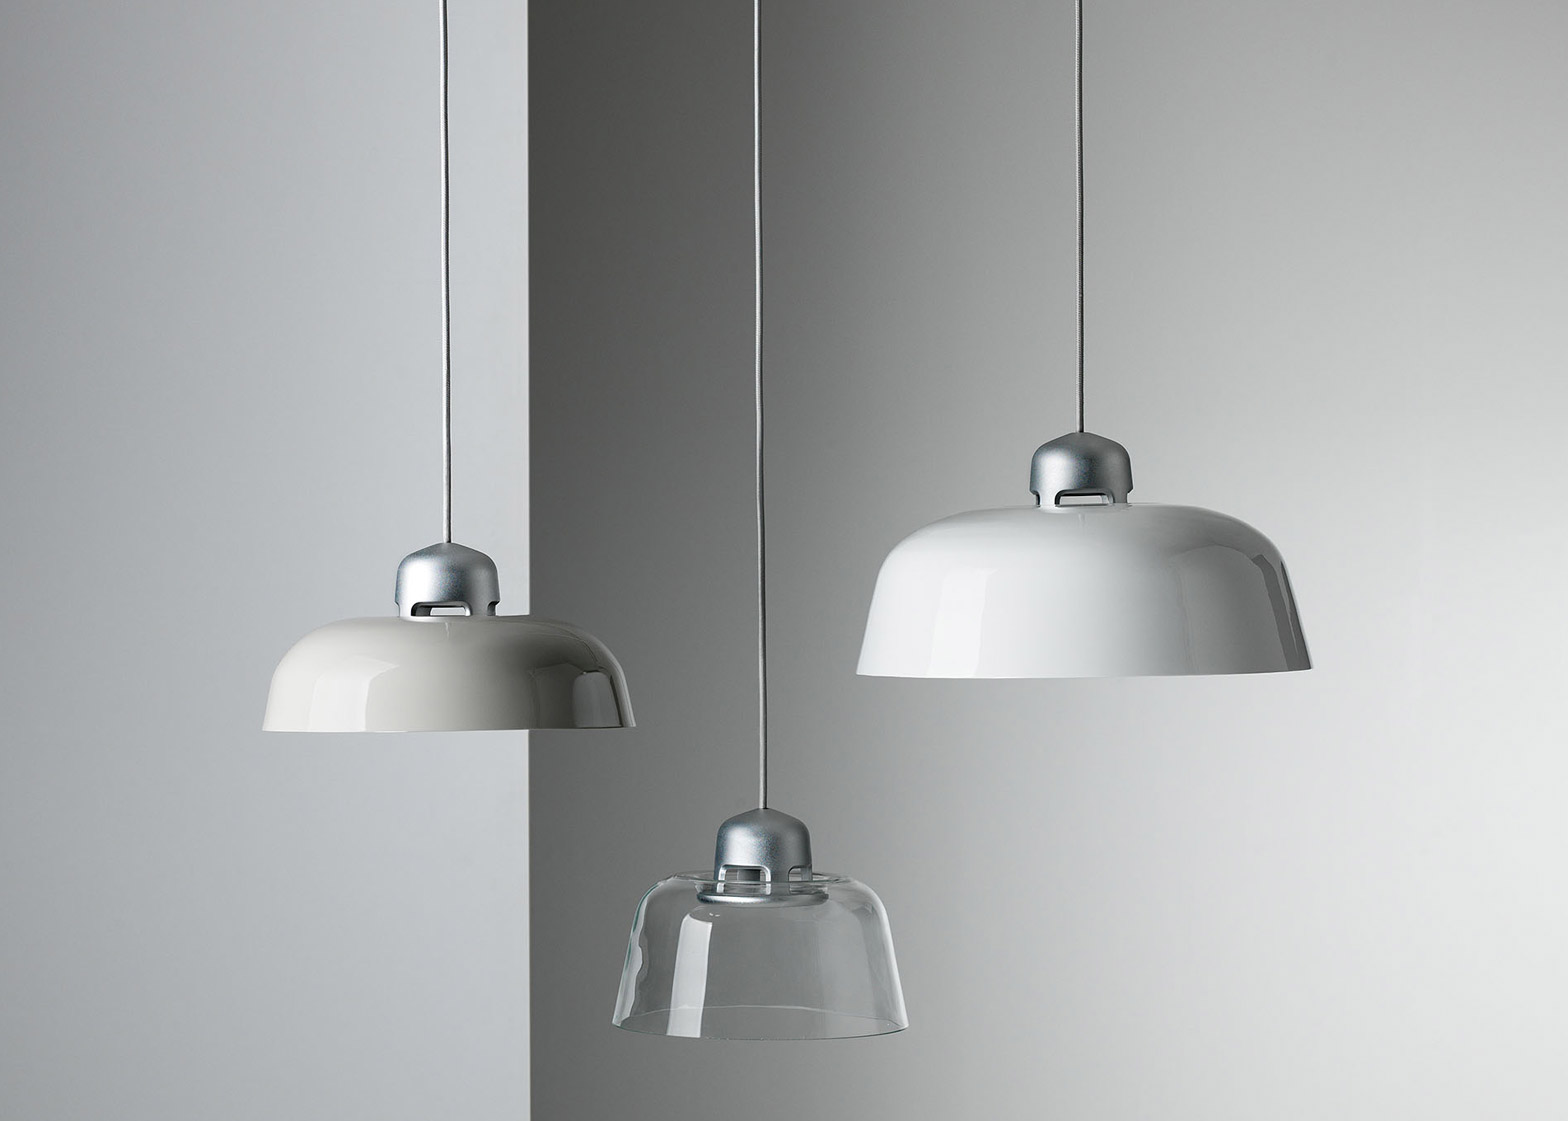 industrial lamps design 5 of 5; w162 dalston by wästberg VUIKYBX